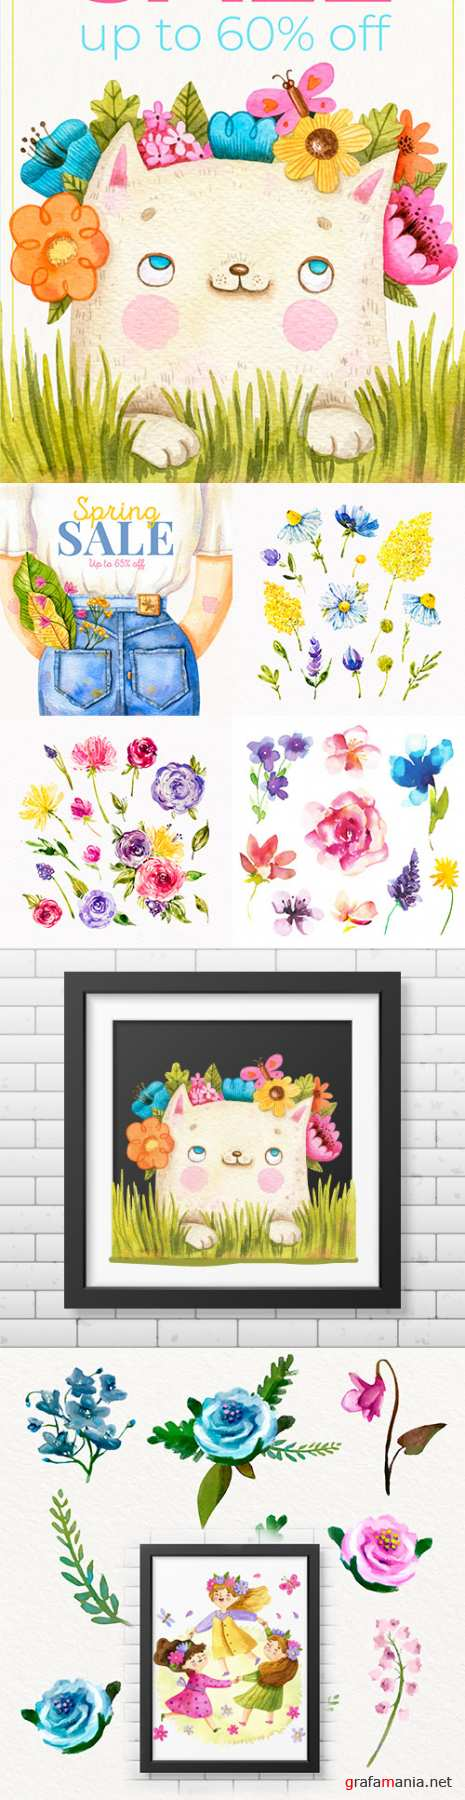 Watercolor flowers and elements for illustration design